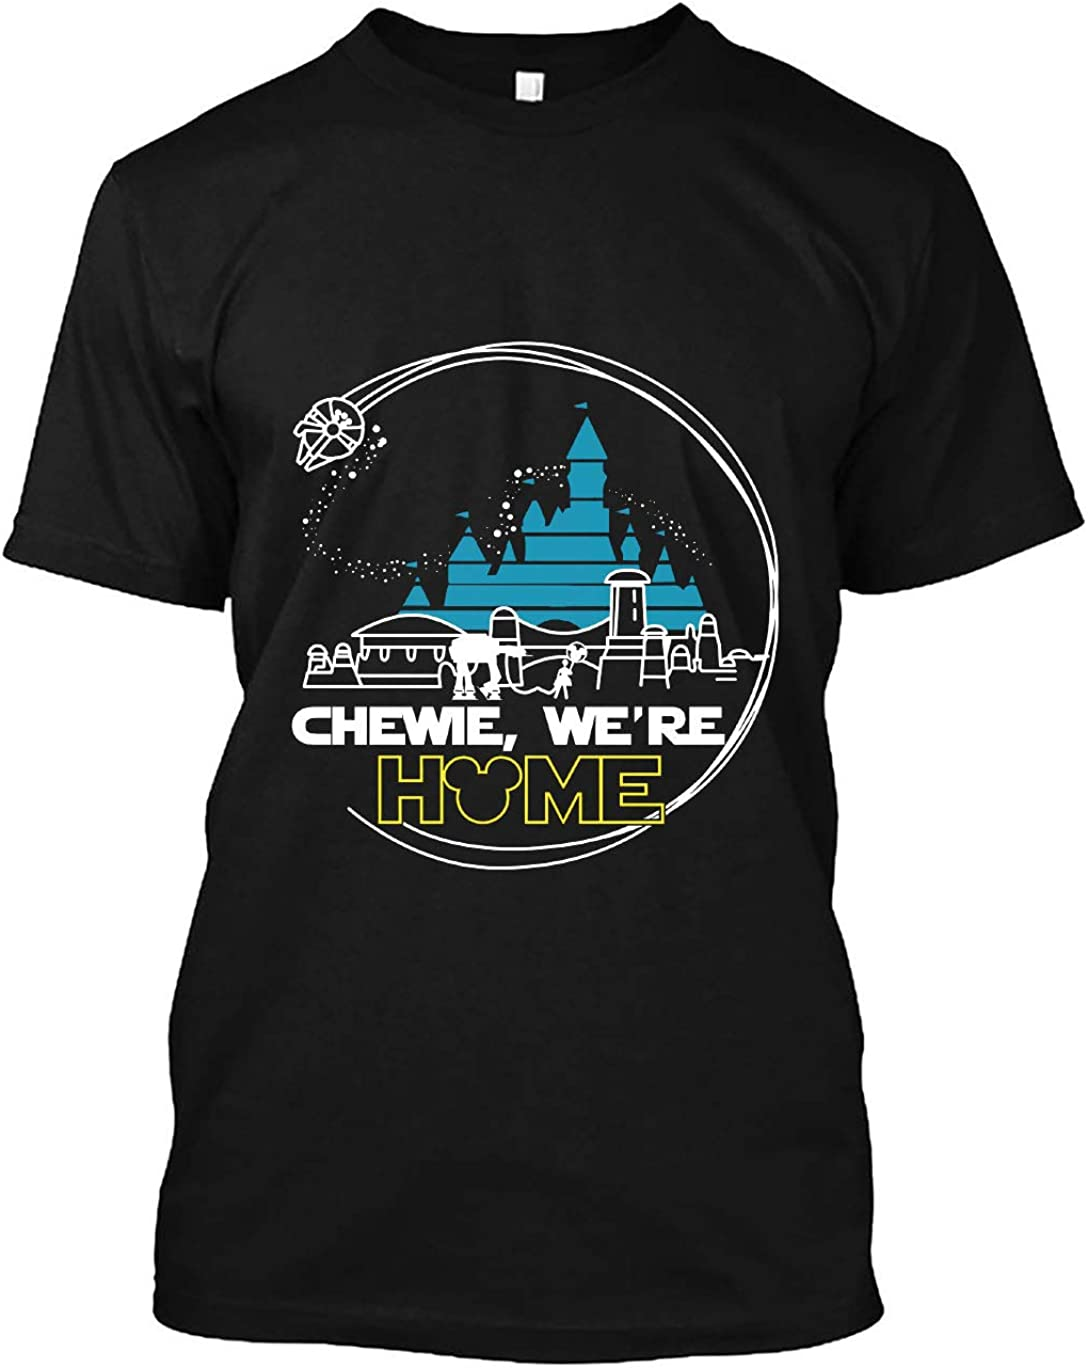 Chewie We're Home Shirt